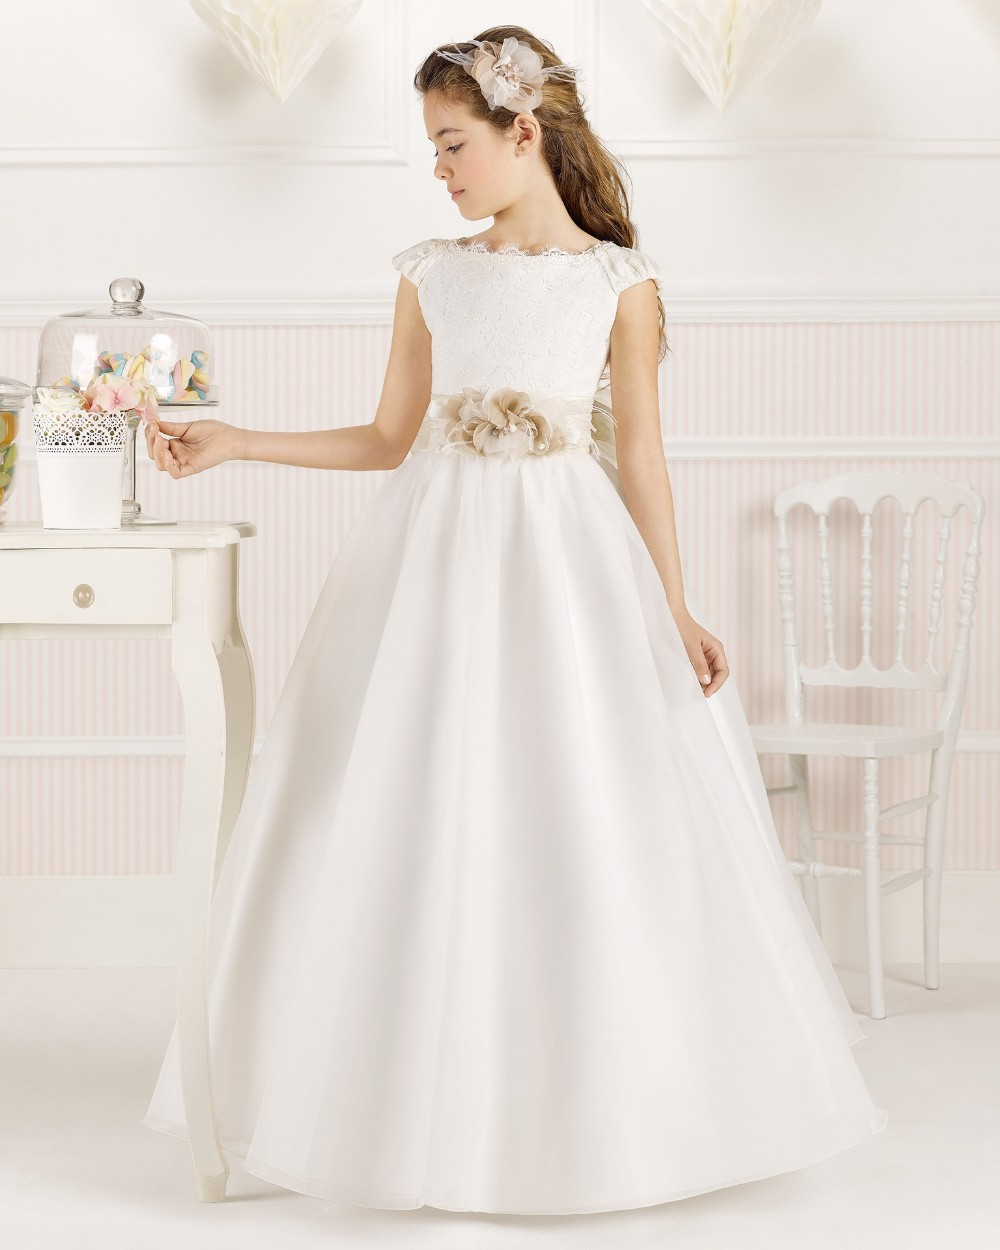 2019 A-Line Scoop   Flower     Girl     Dresses   Sleeveless Floor-Length Embroidery Cap Sleeves Satin first communion   dress   for   girls